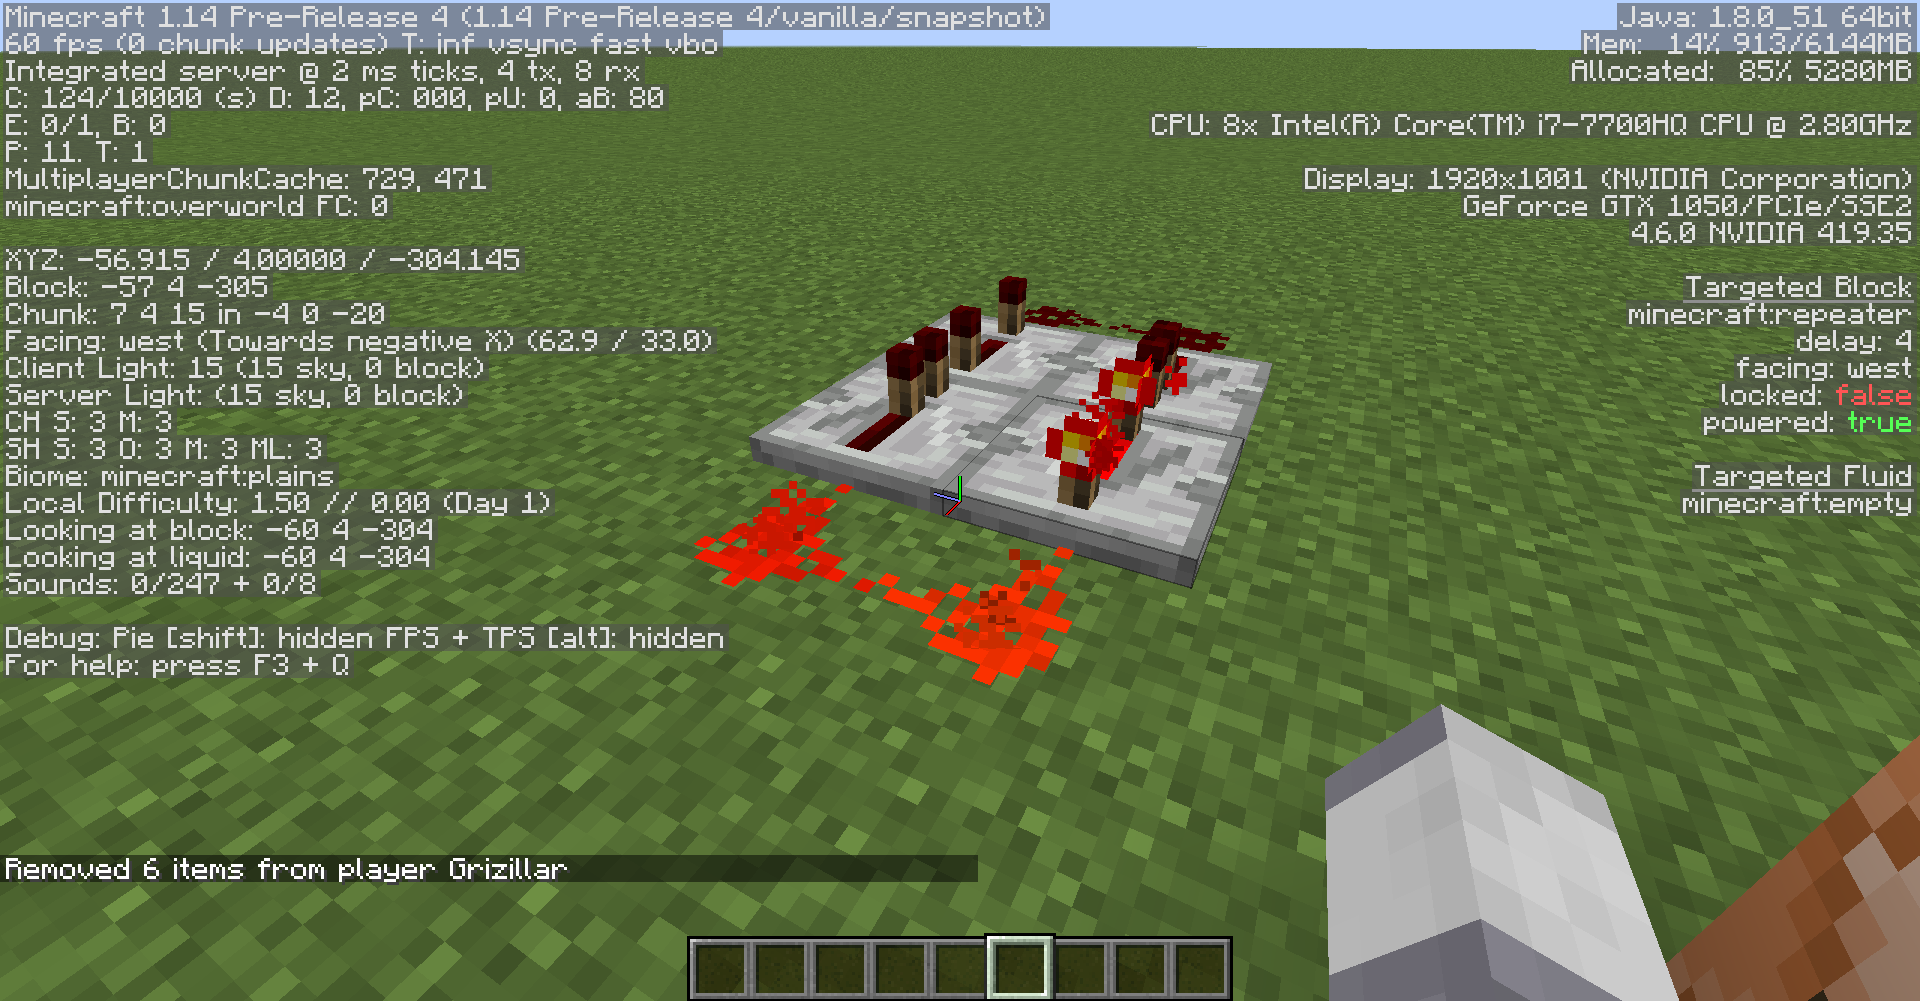 MC-148607] After player died, redstone loop and command